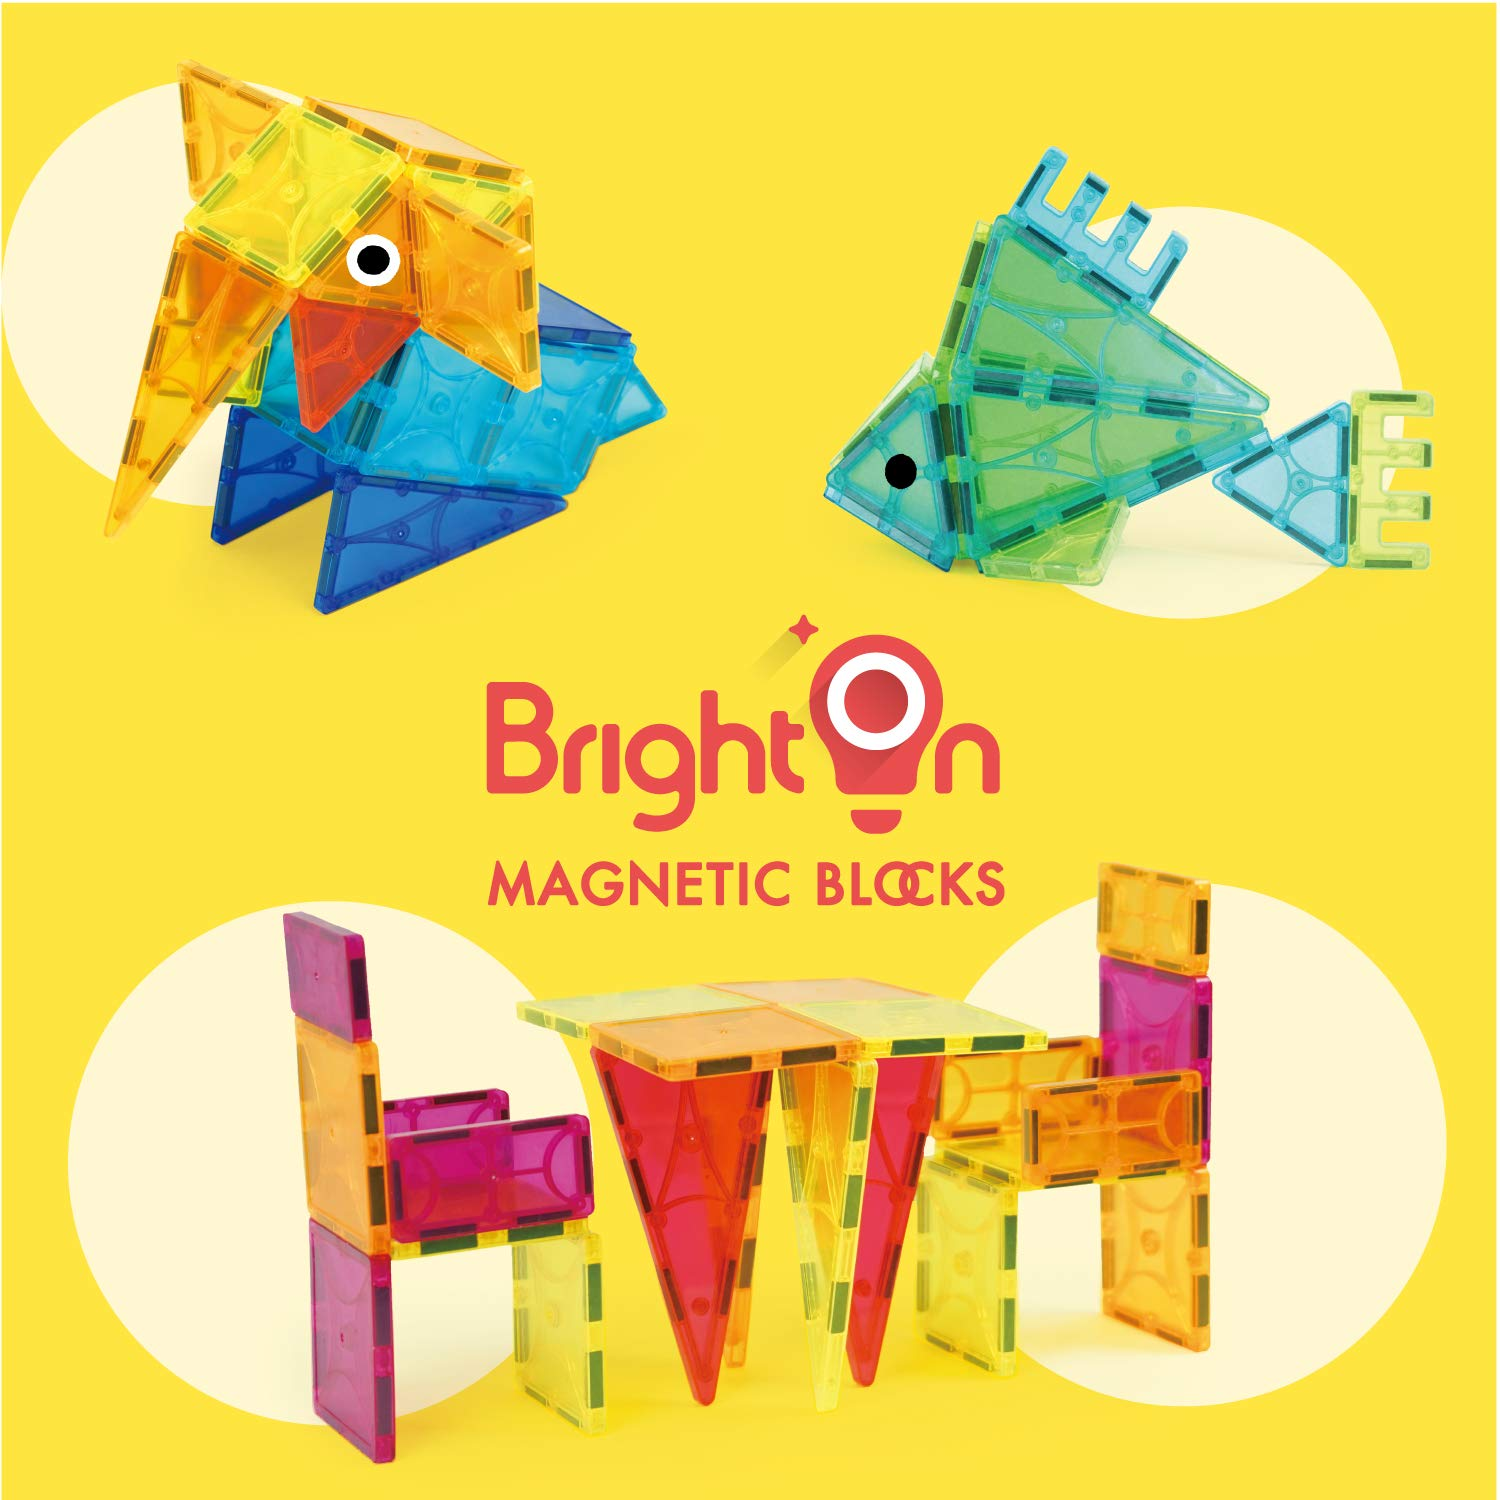 BrightOn Educational Kids Toys Magnetic Building Blocks, Creative Toys 3D Magnetic Blocks for Kids, Imagination Magnets Building Tiles for Children 105Pcs by BrightOn (Image #5)